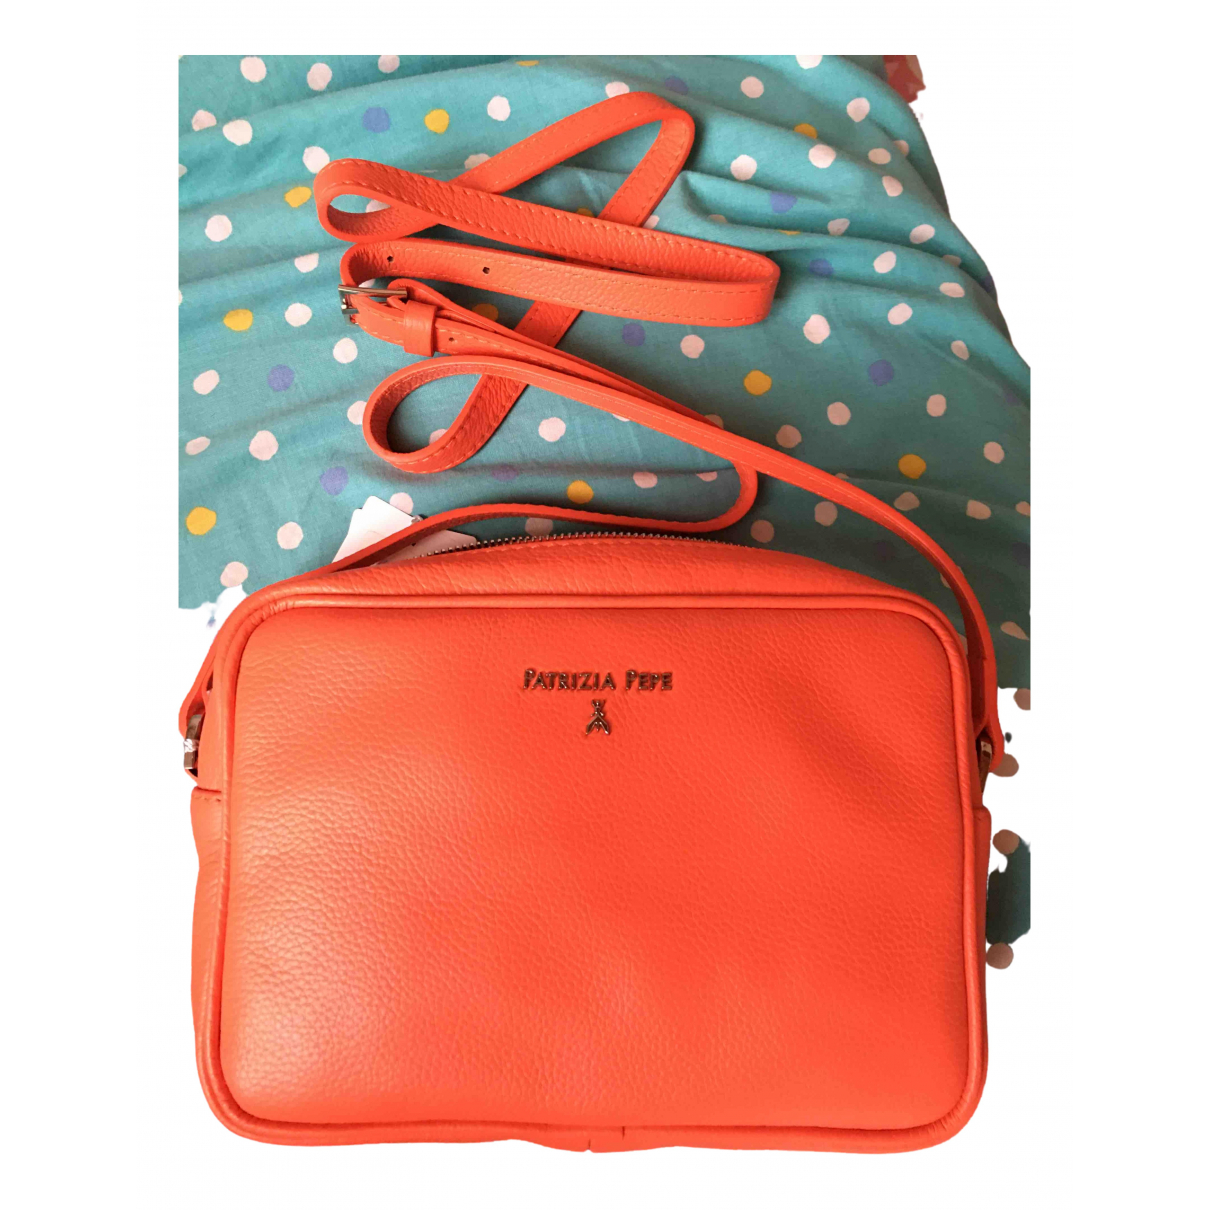 Patrizia Pepe \N Orange Leather handbag for Women \N